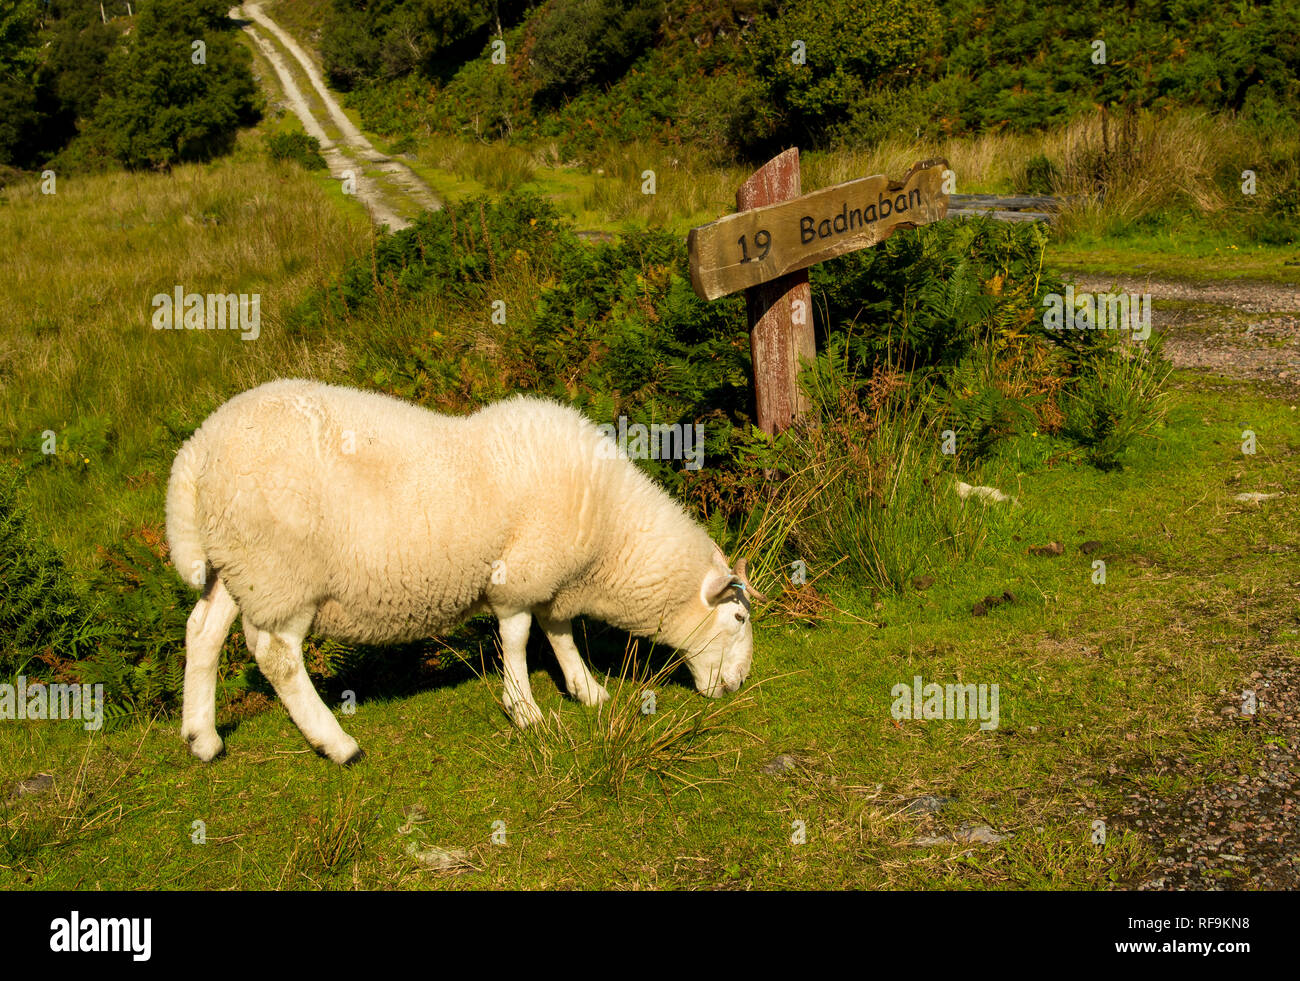 Sheep With Cosy White Fur Grazing In Front Of Streetsign To Badnaban In Scotland - Stock Image